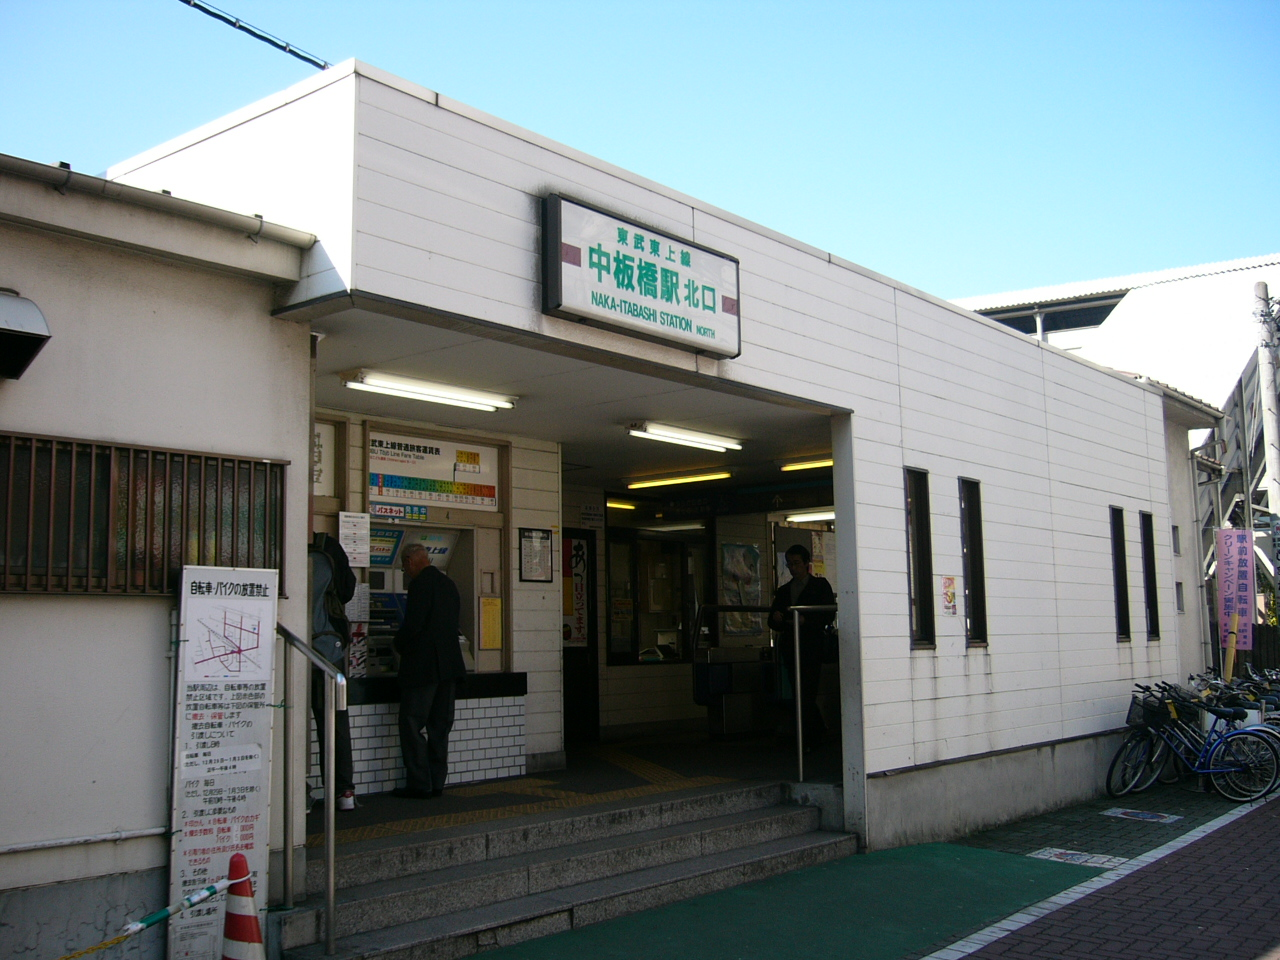 https://upload.wikimedia.org/wikipedia/commons/9/9e/Naka-itabashi_sta_north.jpg